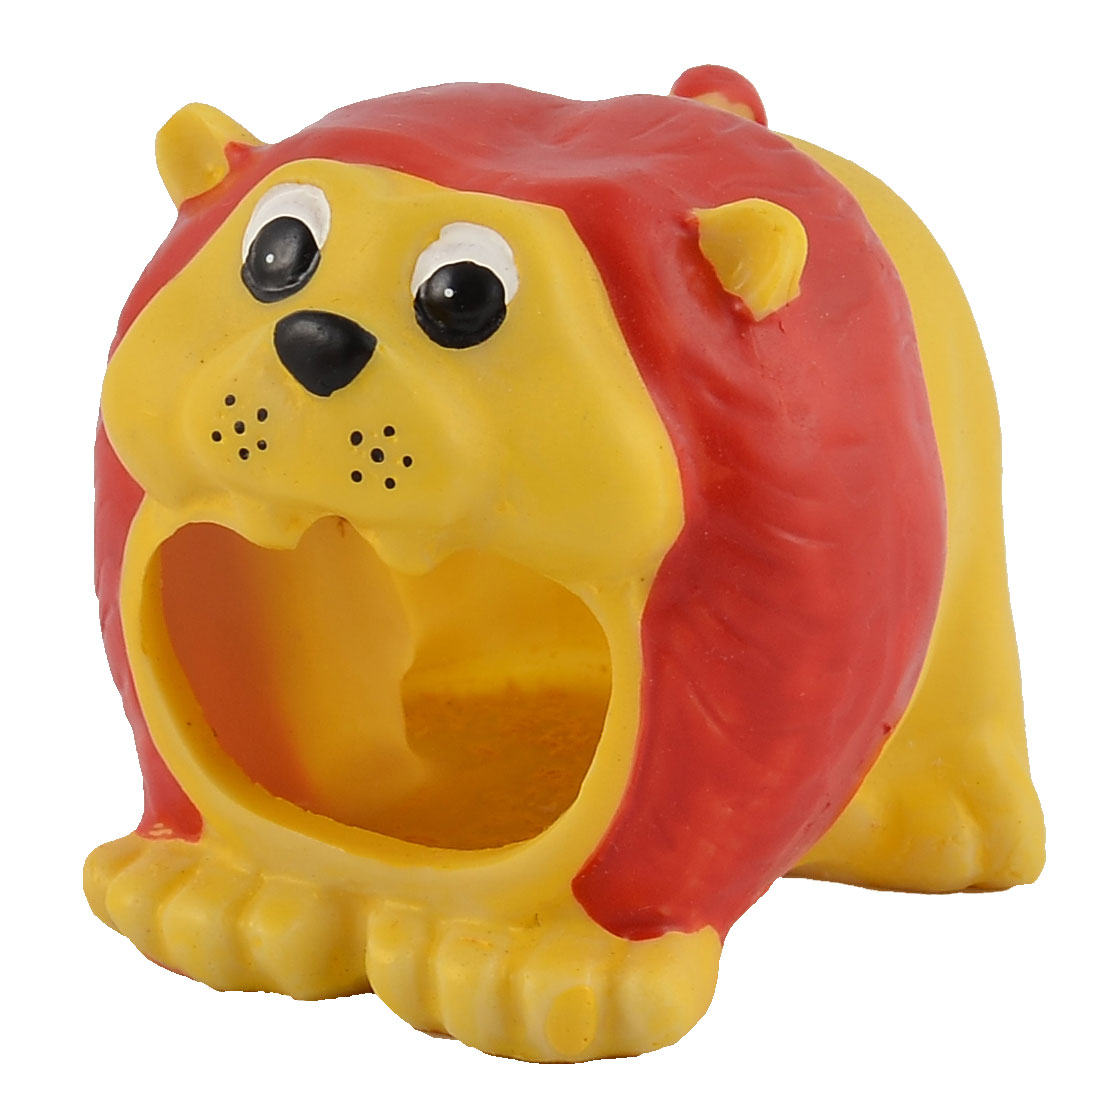 Pet Hamster Resin Animal Shaped House Ornament Yellow Red 3.5cm Entrance Width